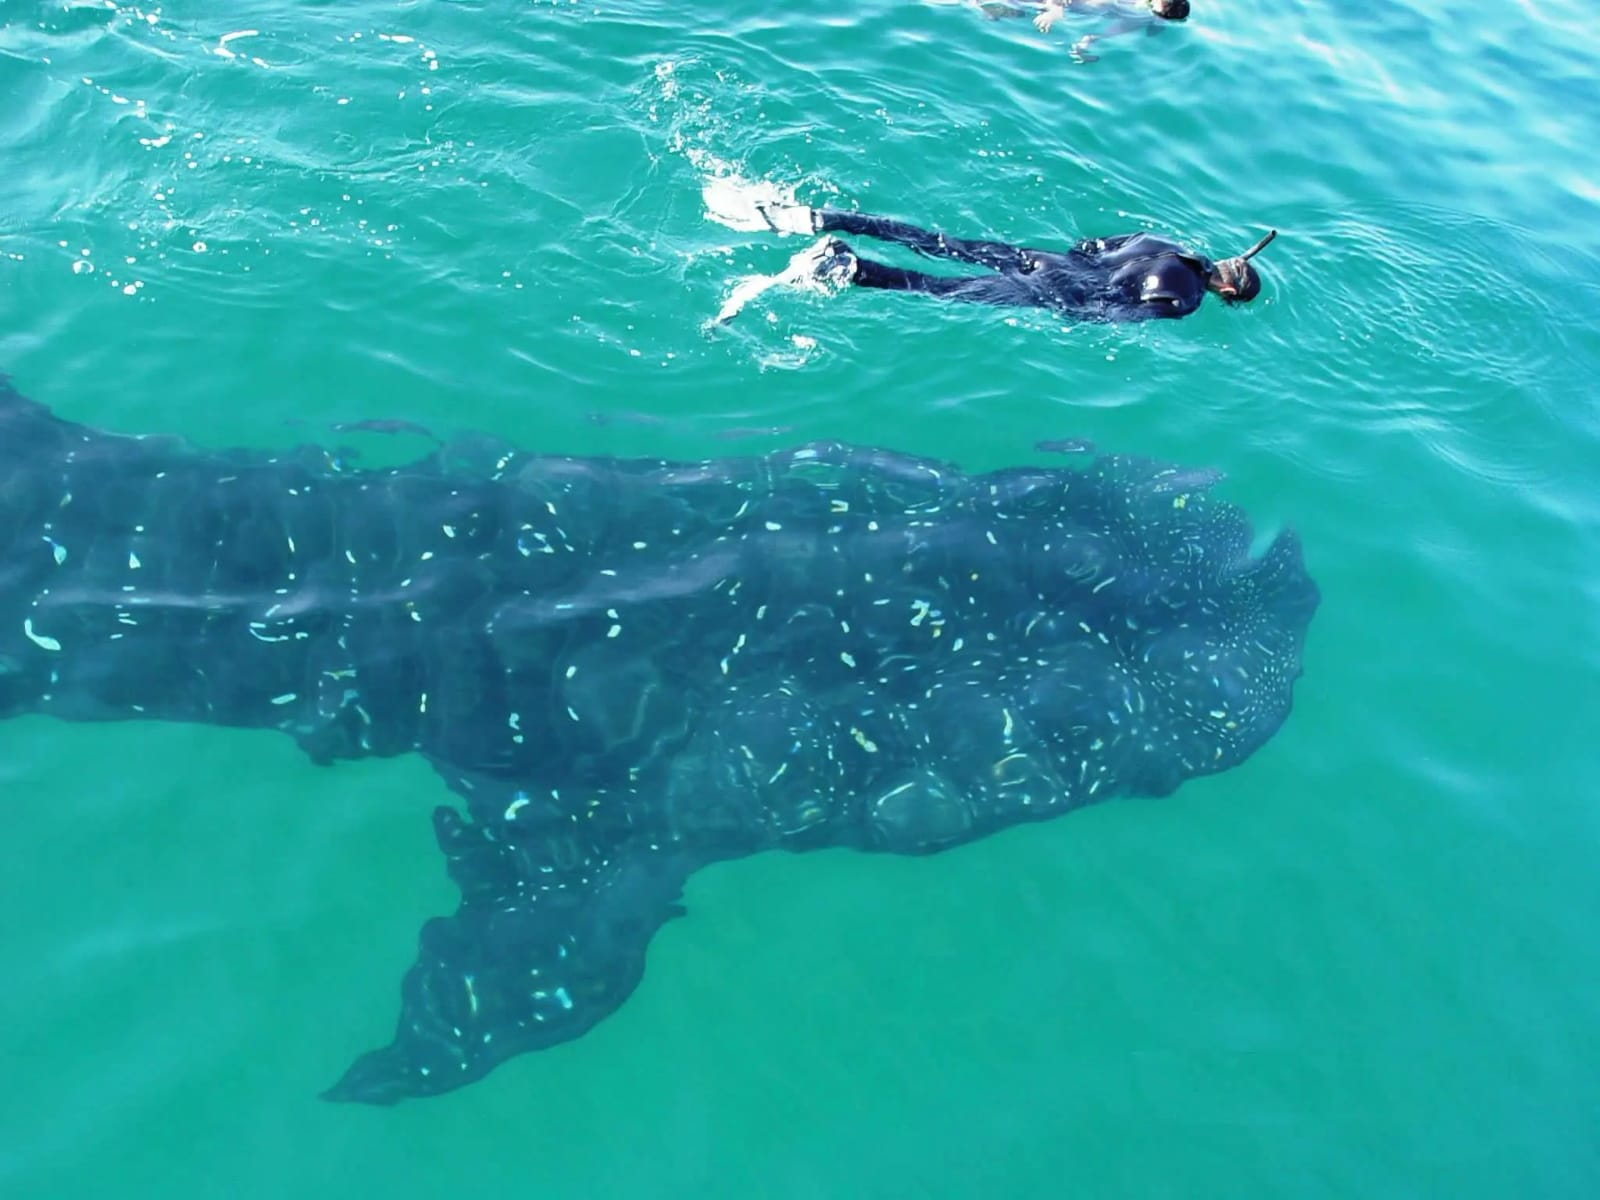 Diver swimming above a whale shark